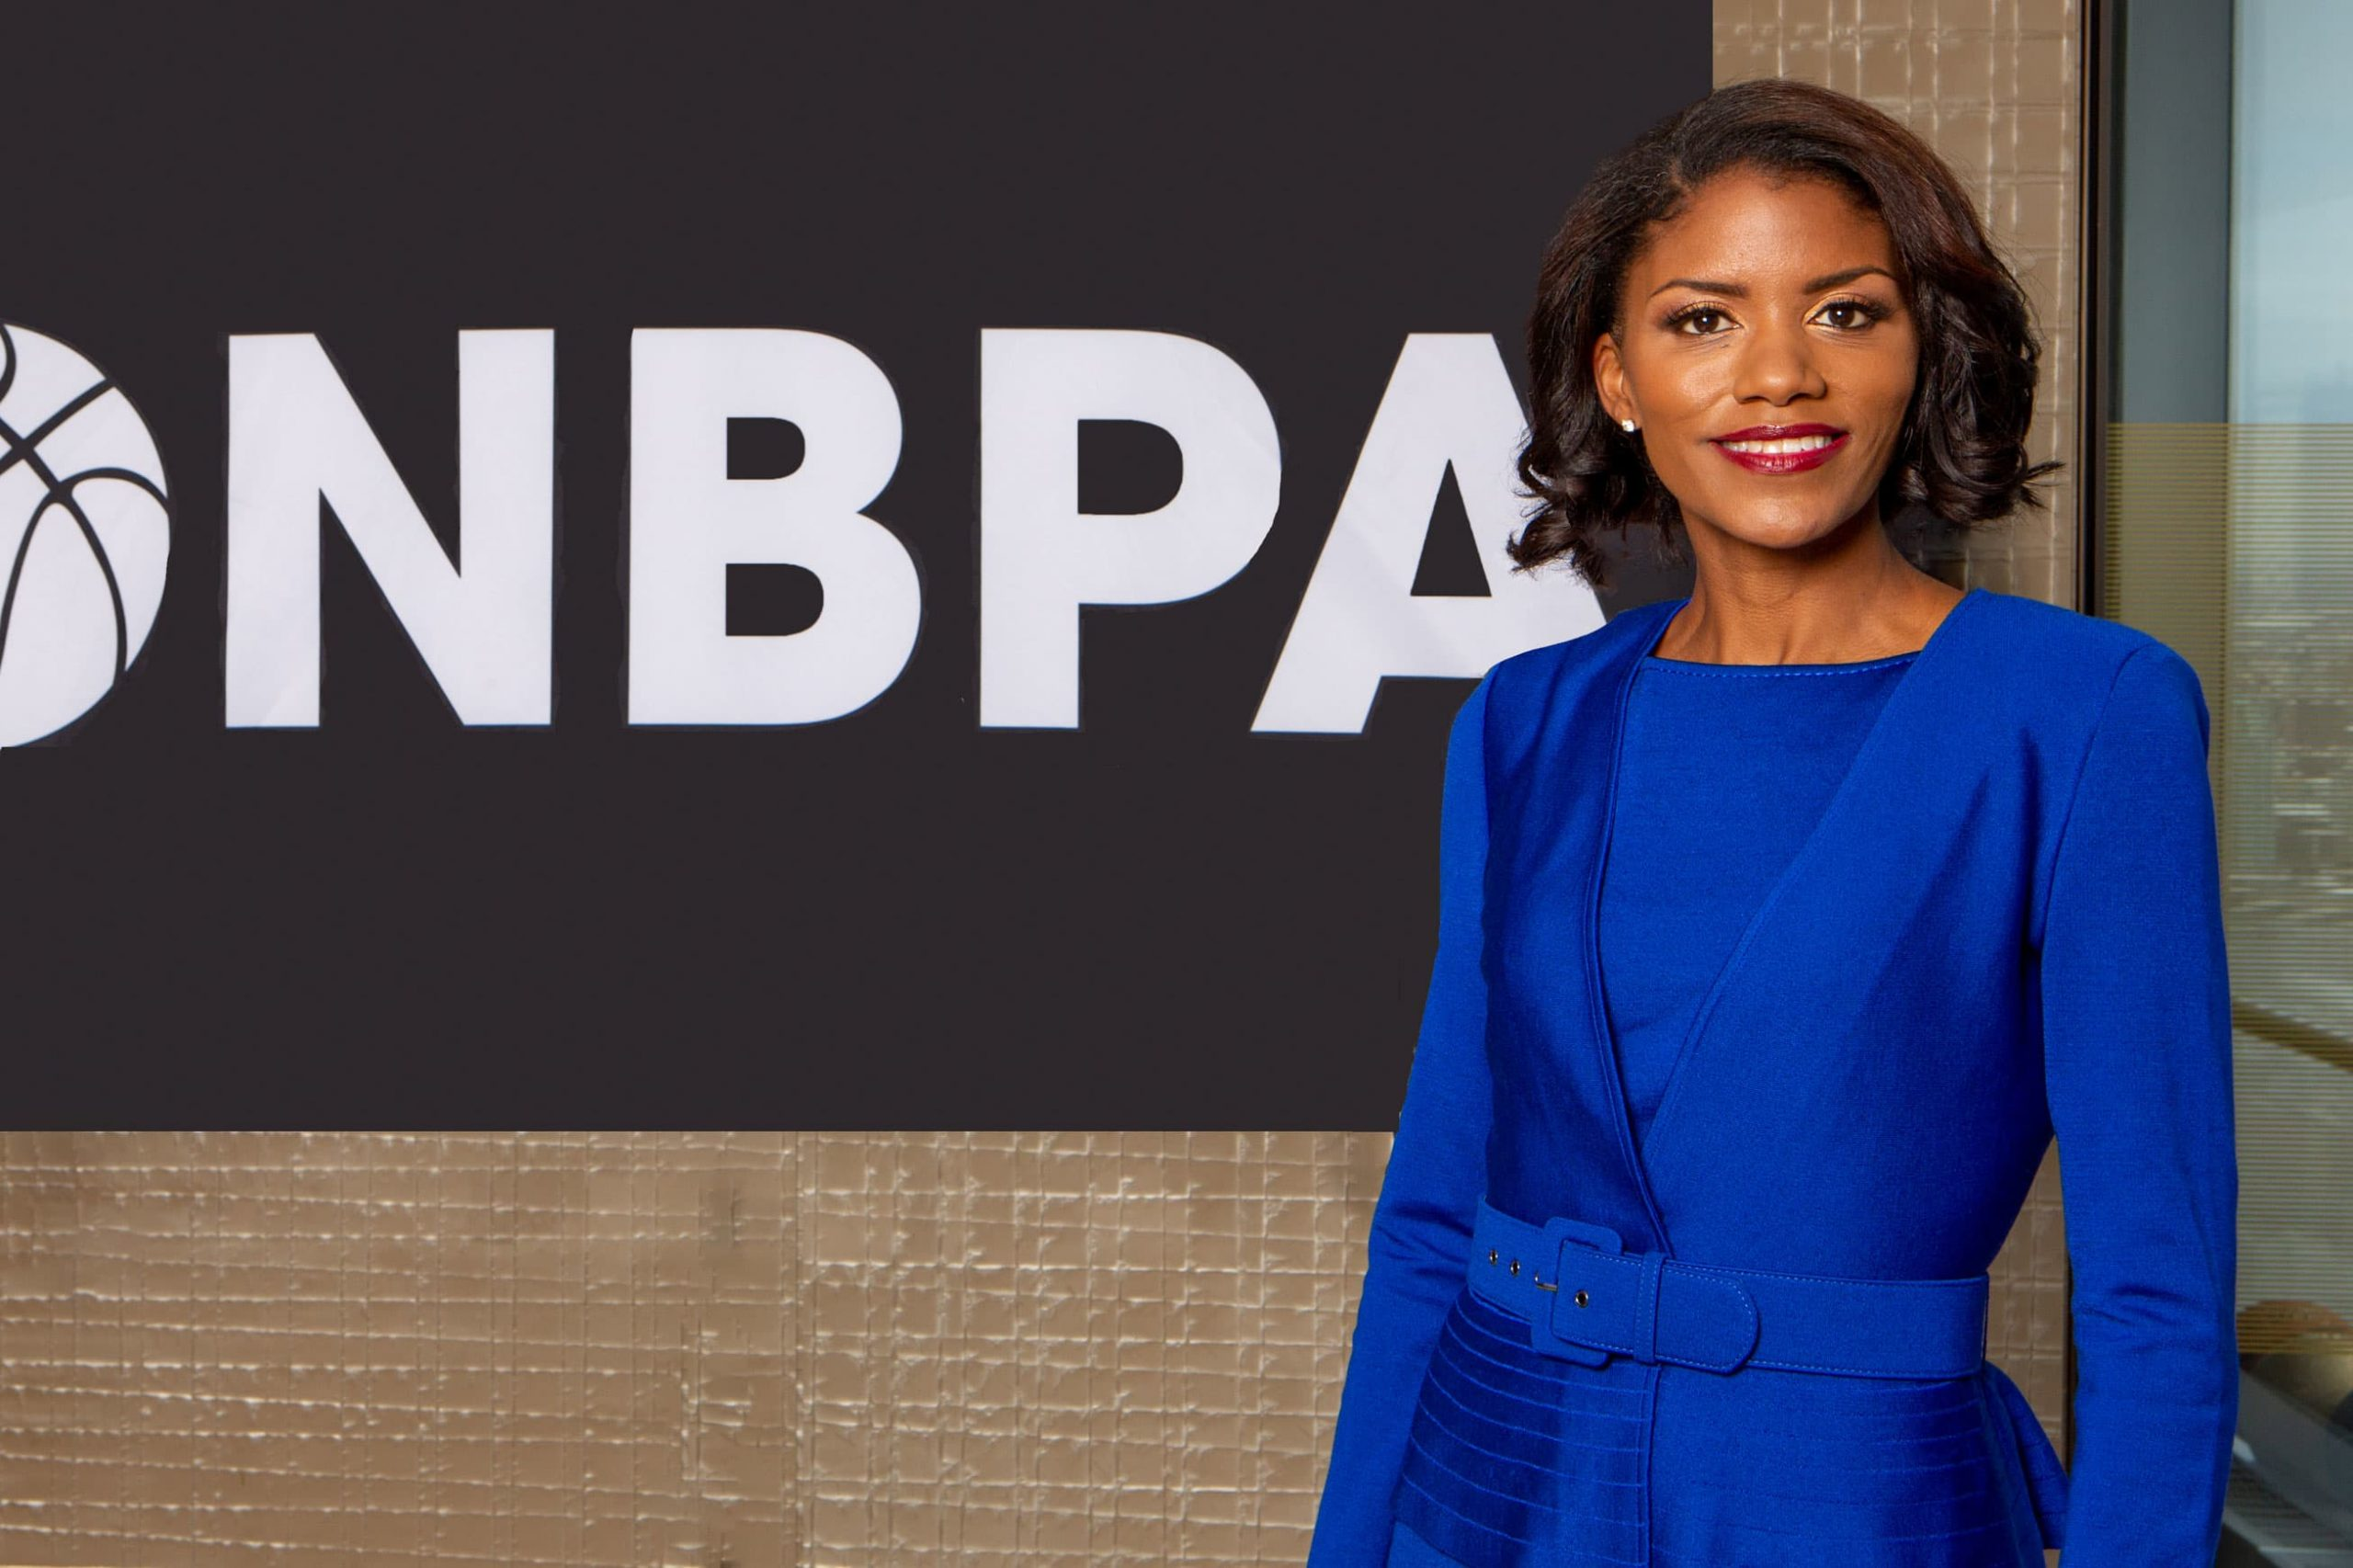 NBA union executive leads talks to help players make more money from NFTs